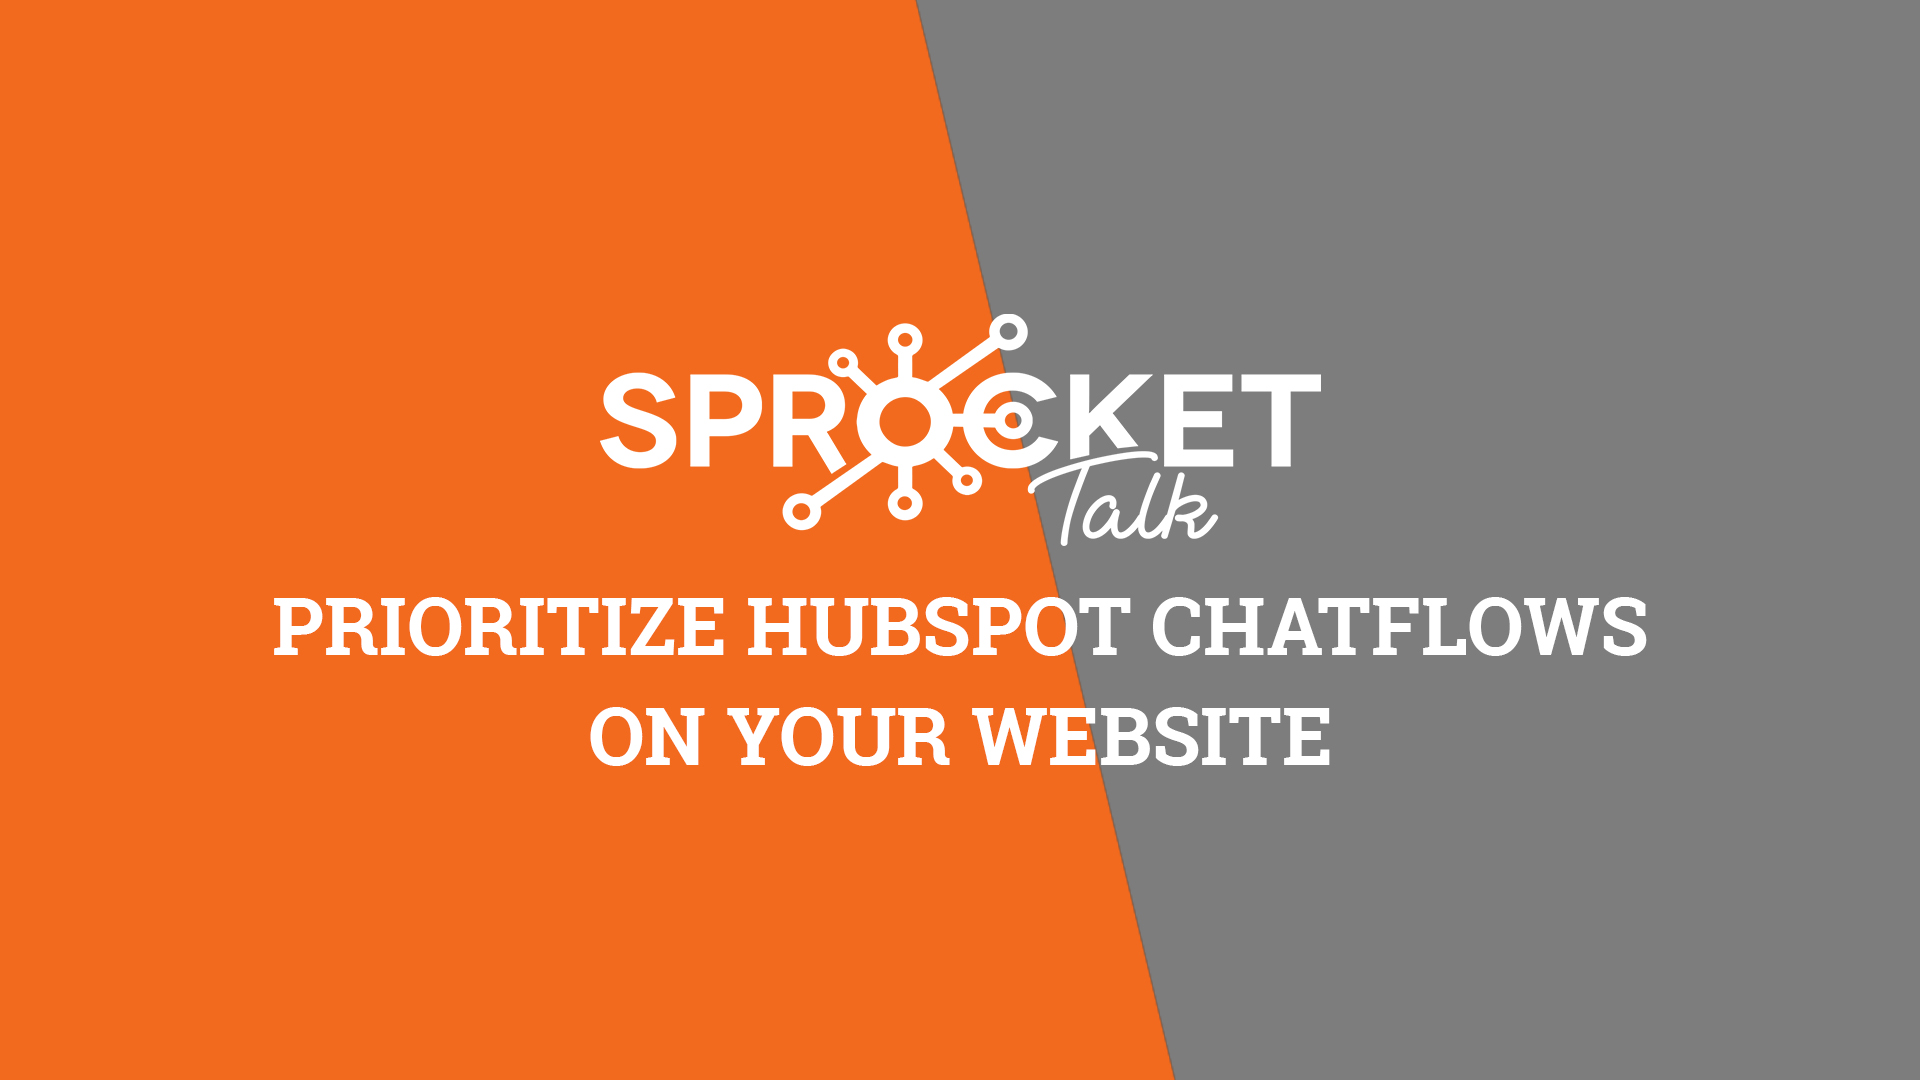 Prioritize HubSpot Chatflows on Your Website